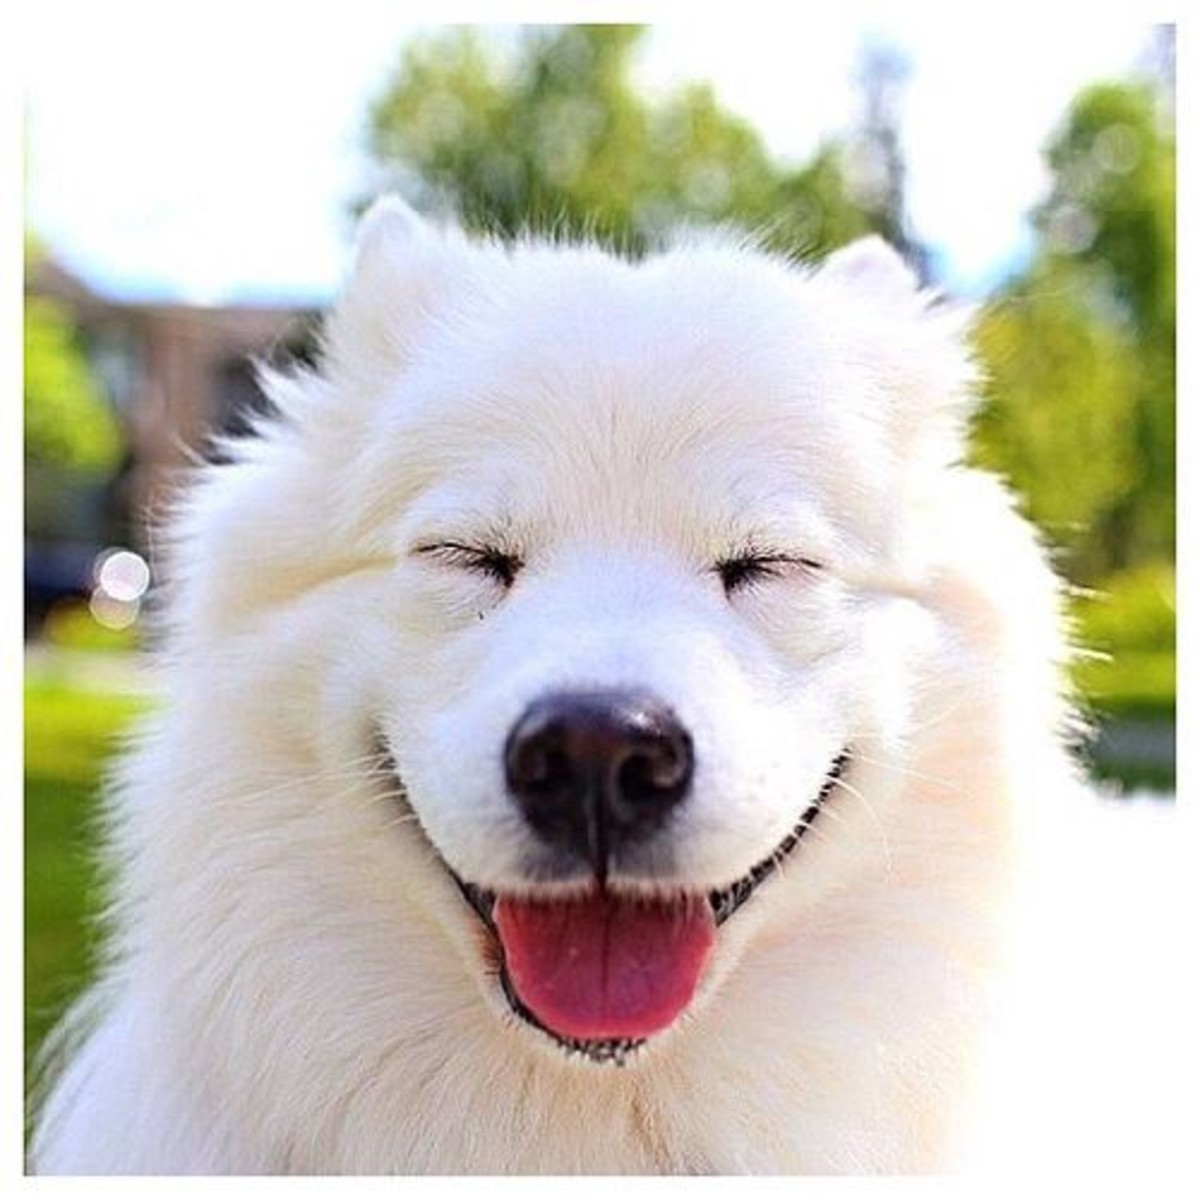 A smiley dog: Samoyed